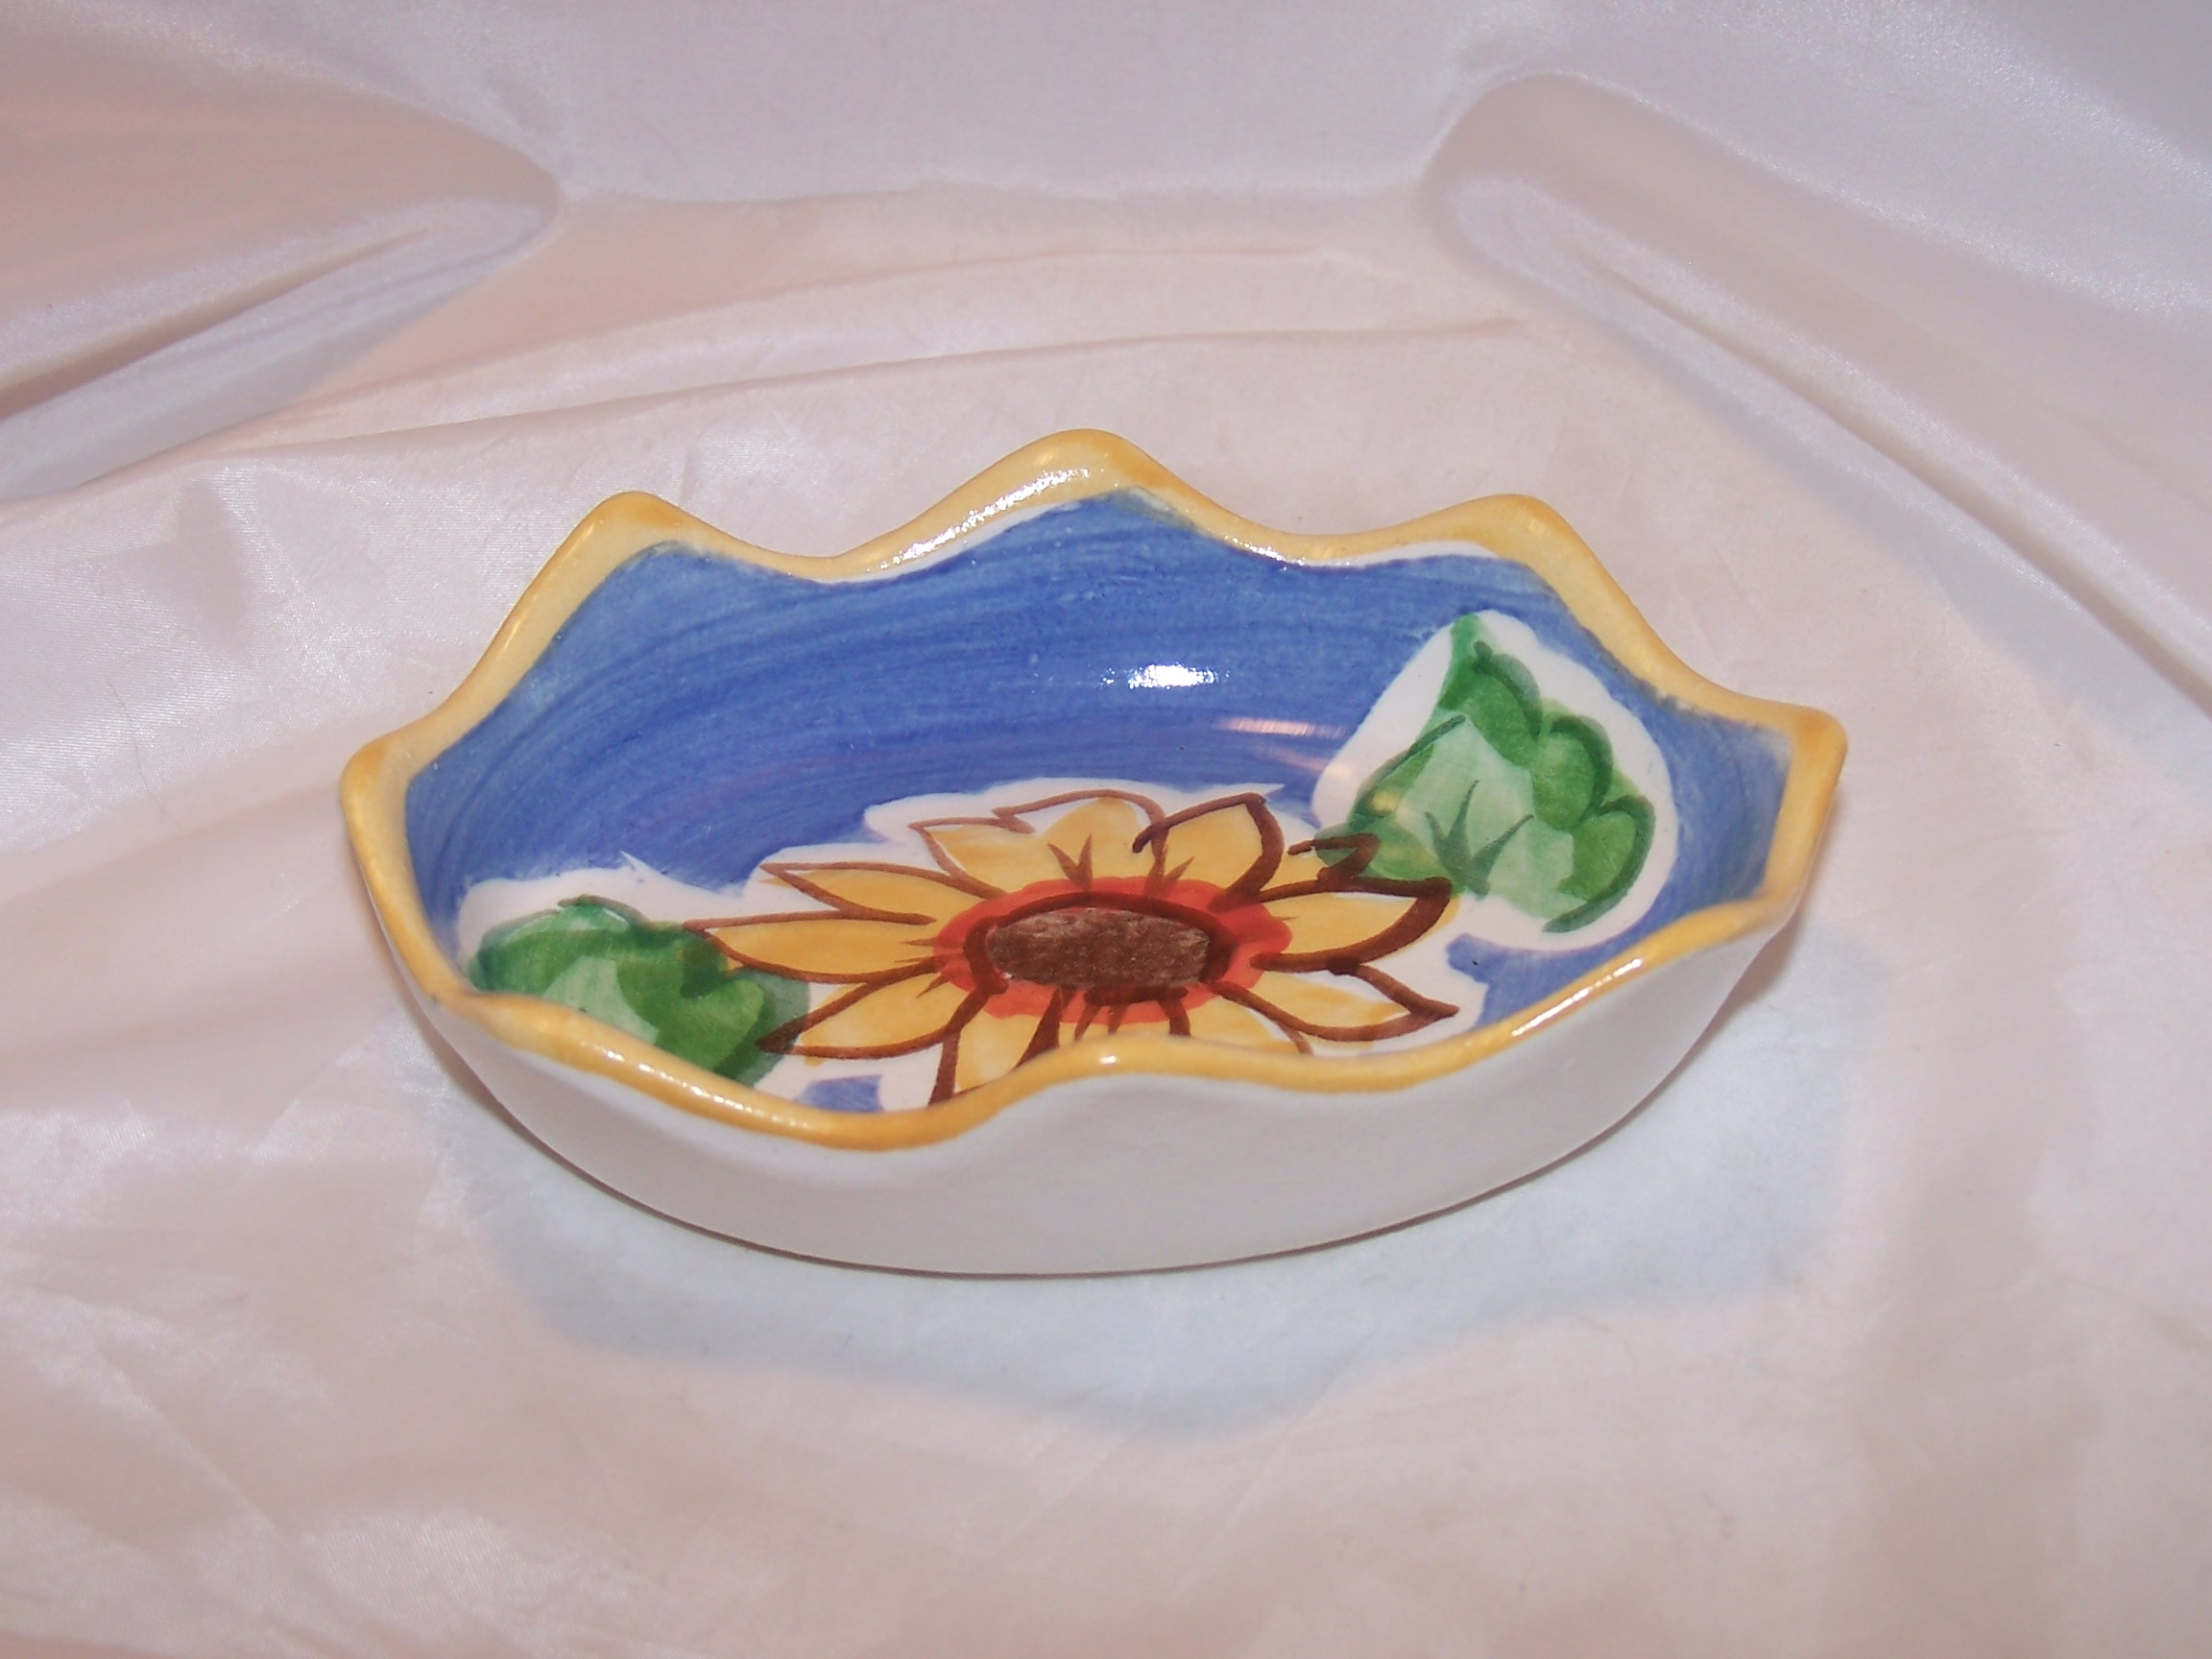 Image 3 of Fioriware Soap Dish Sunflower Handcrafted Ohio